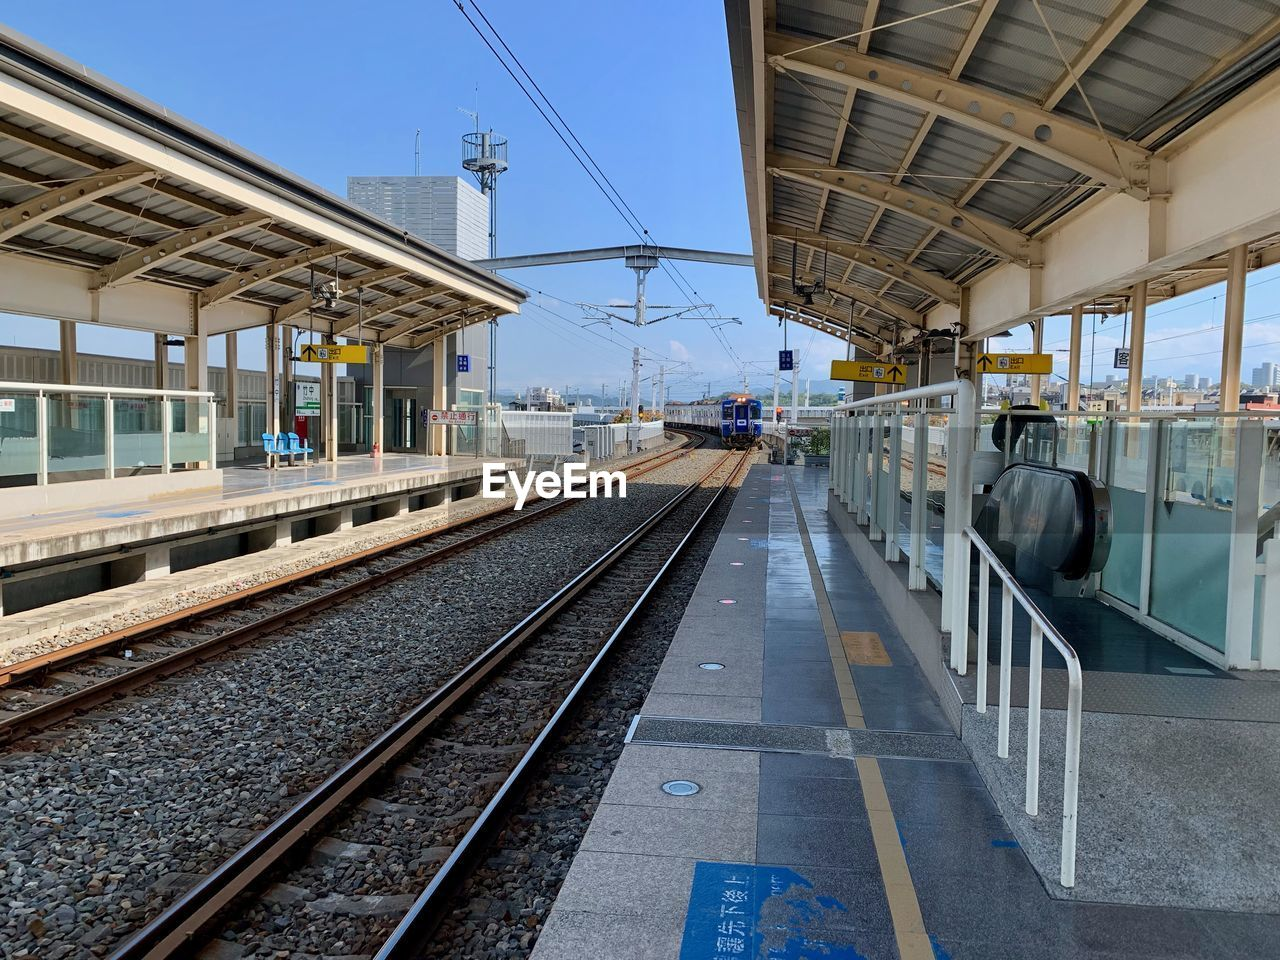 architecture, track, transportation, railroad track, built structure, rail transportation, sky, railroad station platform, building exterior, direction, railroad station, nature, the way forward, mode of transportation, day, travel, public transportation, diminishing perspective, outdoors, cable, no people, electricity, station, power supply, long